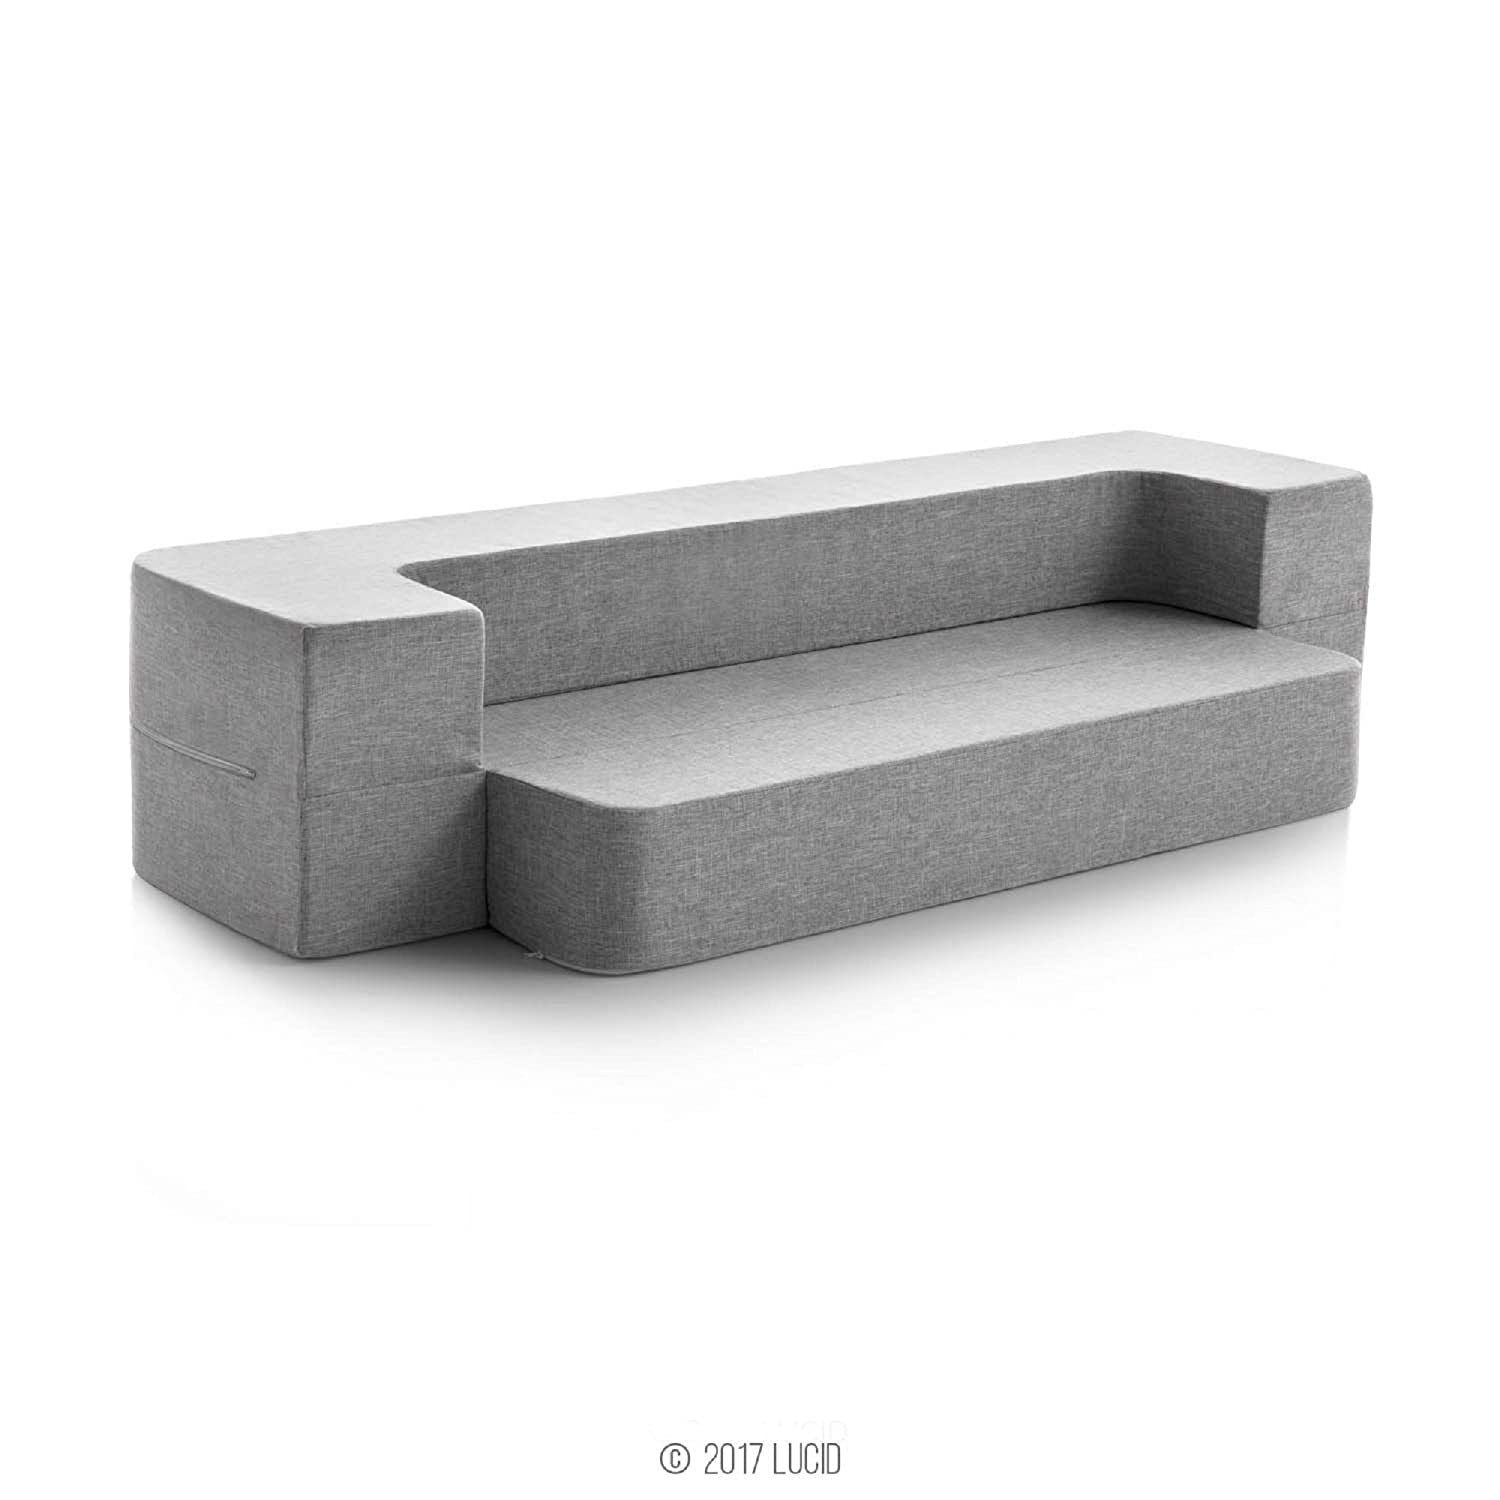 Wonderful Amazon.com: LUCID 8 Inch Convertible Foam Sofa And Foldable Play  Mat Durable Fashion Cover, Twin, Grey: Kitchen U0026 Dining